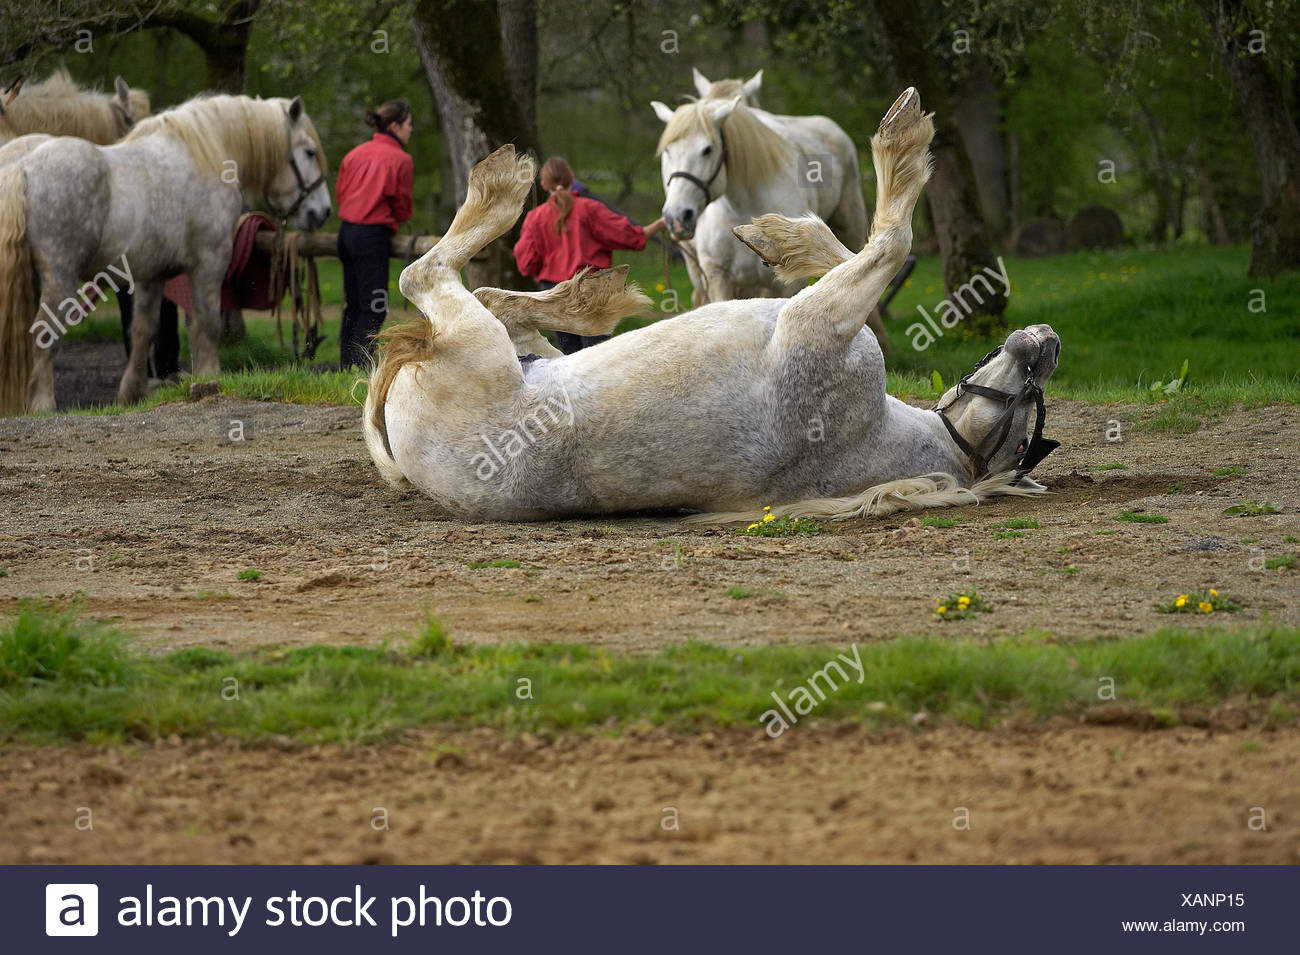 Percheron Draft Horses, a French Breed, Rolling Stock Photo